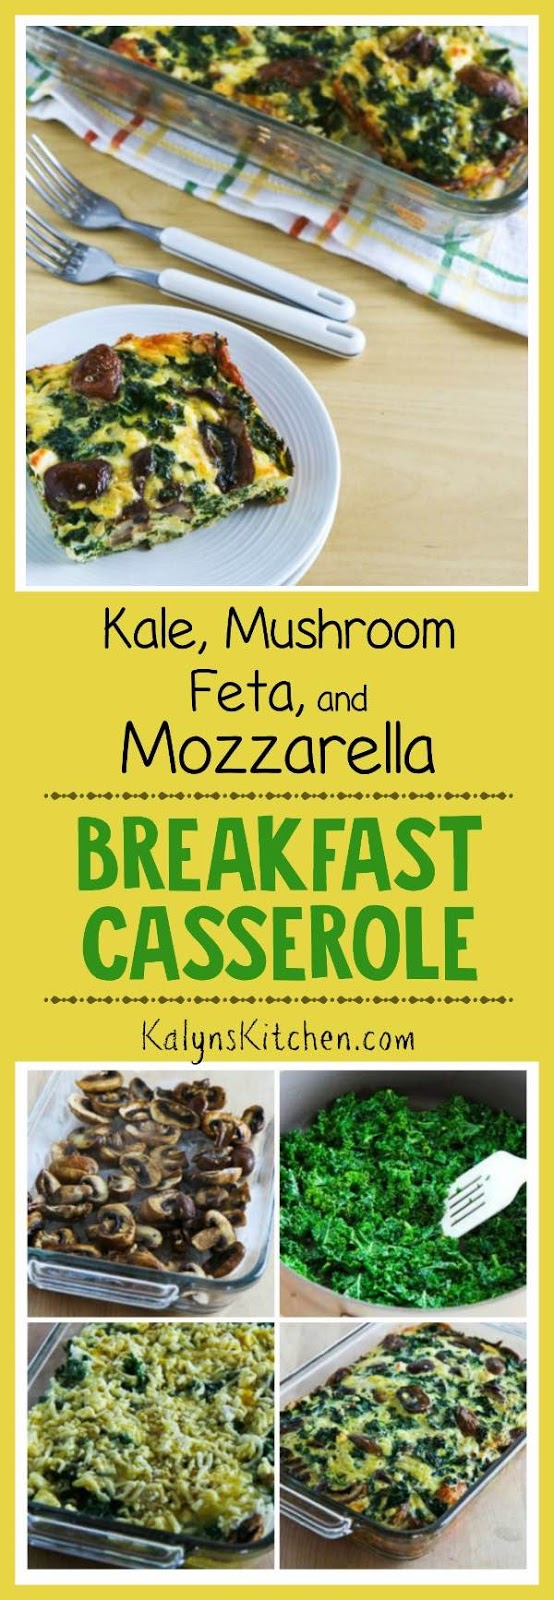 Kale, Bacon and Cheese Breakfast Casserole ~ Kalyn's Kitchen